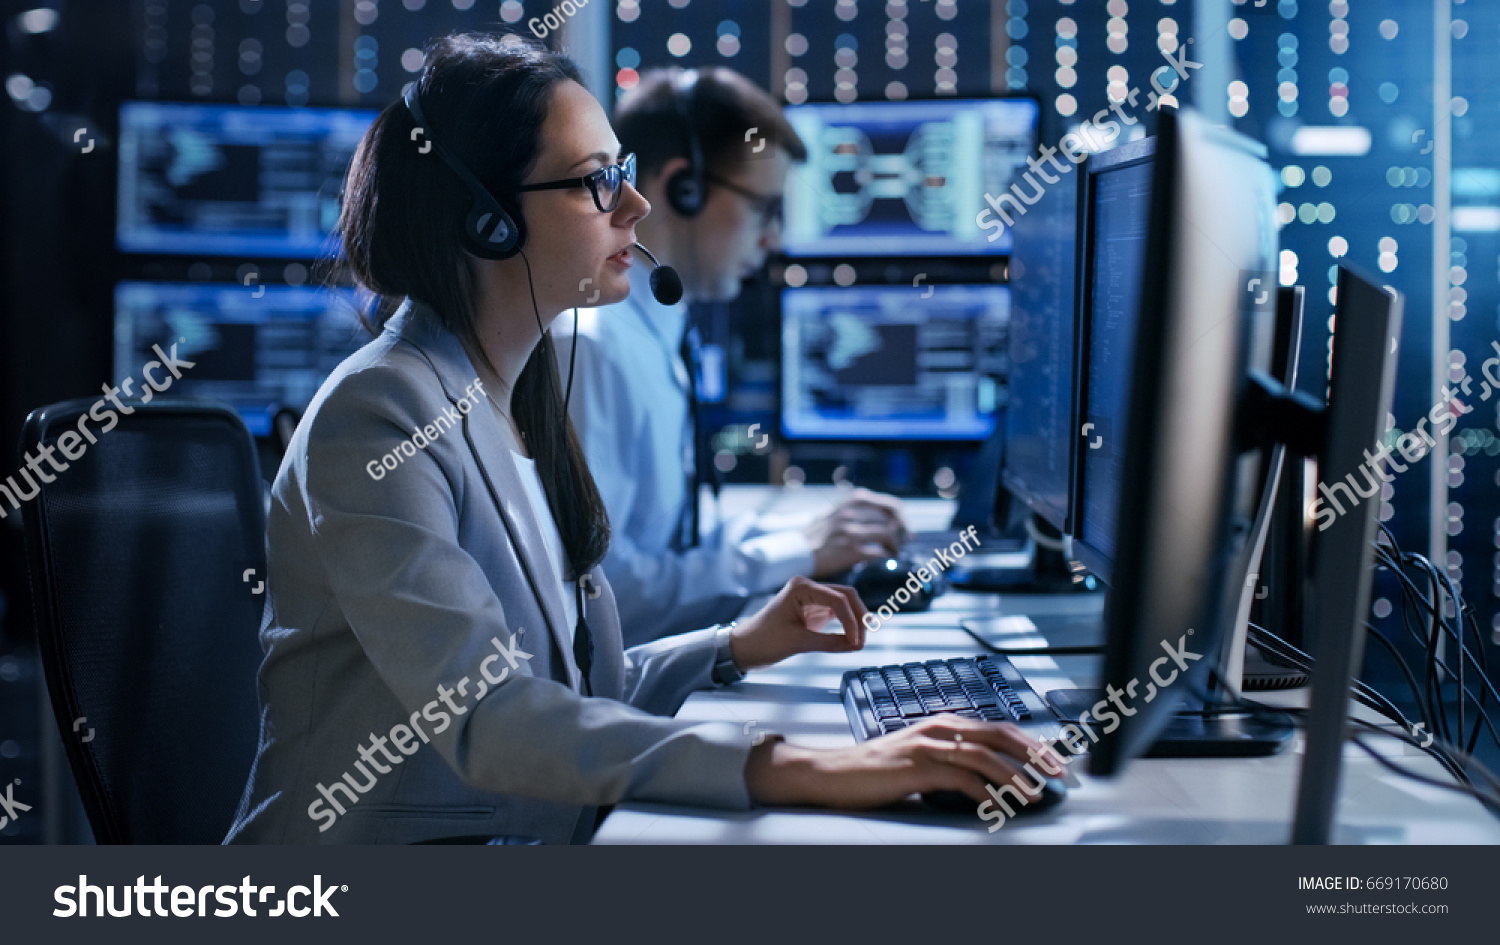 Female working in a Technical Support Team Gives Instructions with the Help of the Headsets. In the Background People Working and Monitors Show Various Information.  #669170680